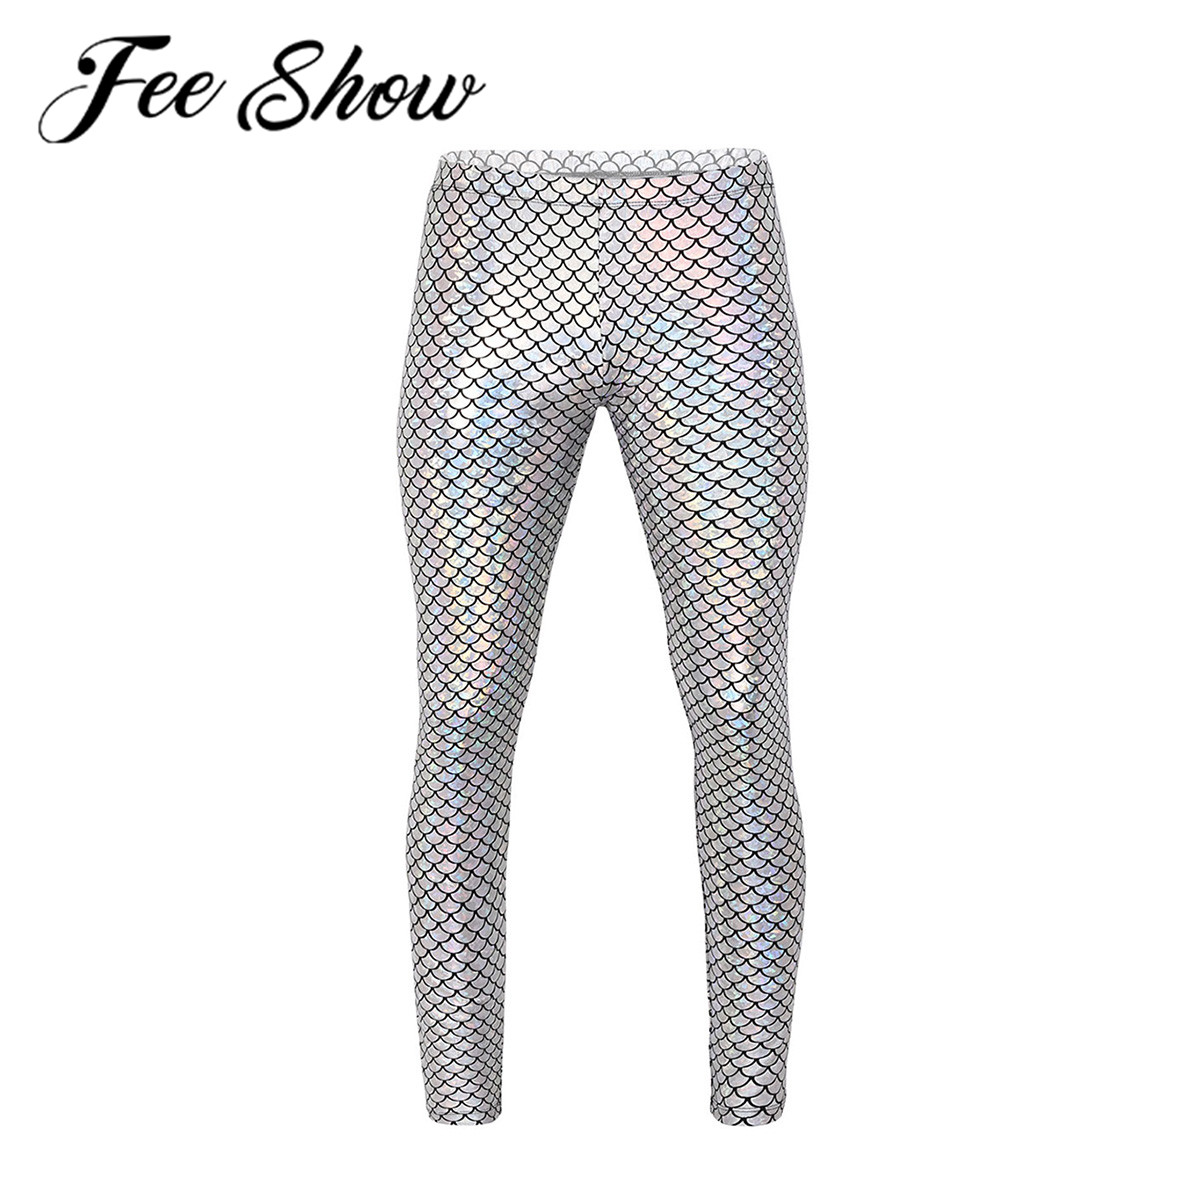 Men Pants Adults Man Shiny Mermaid Fish Scale Print Mid Rise Elastic Waistband Skinny Leggings Tights For Music Festival Costume